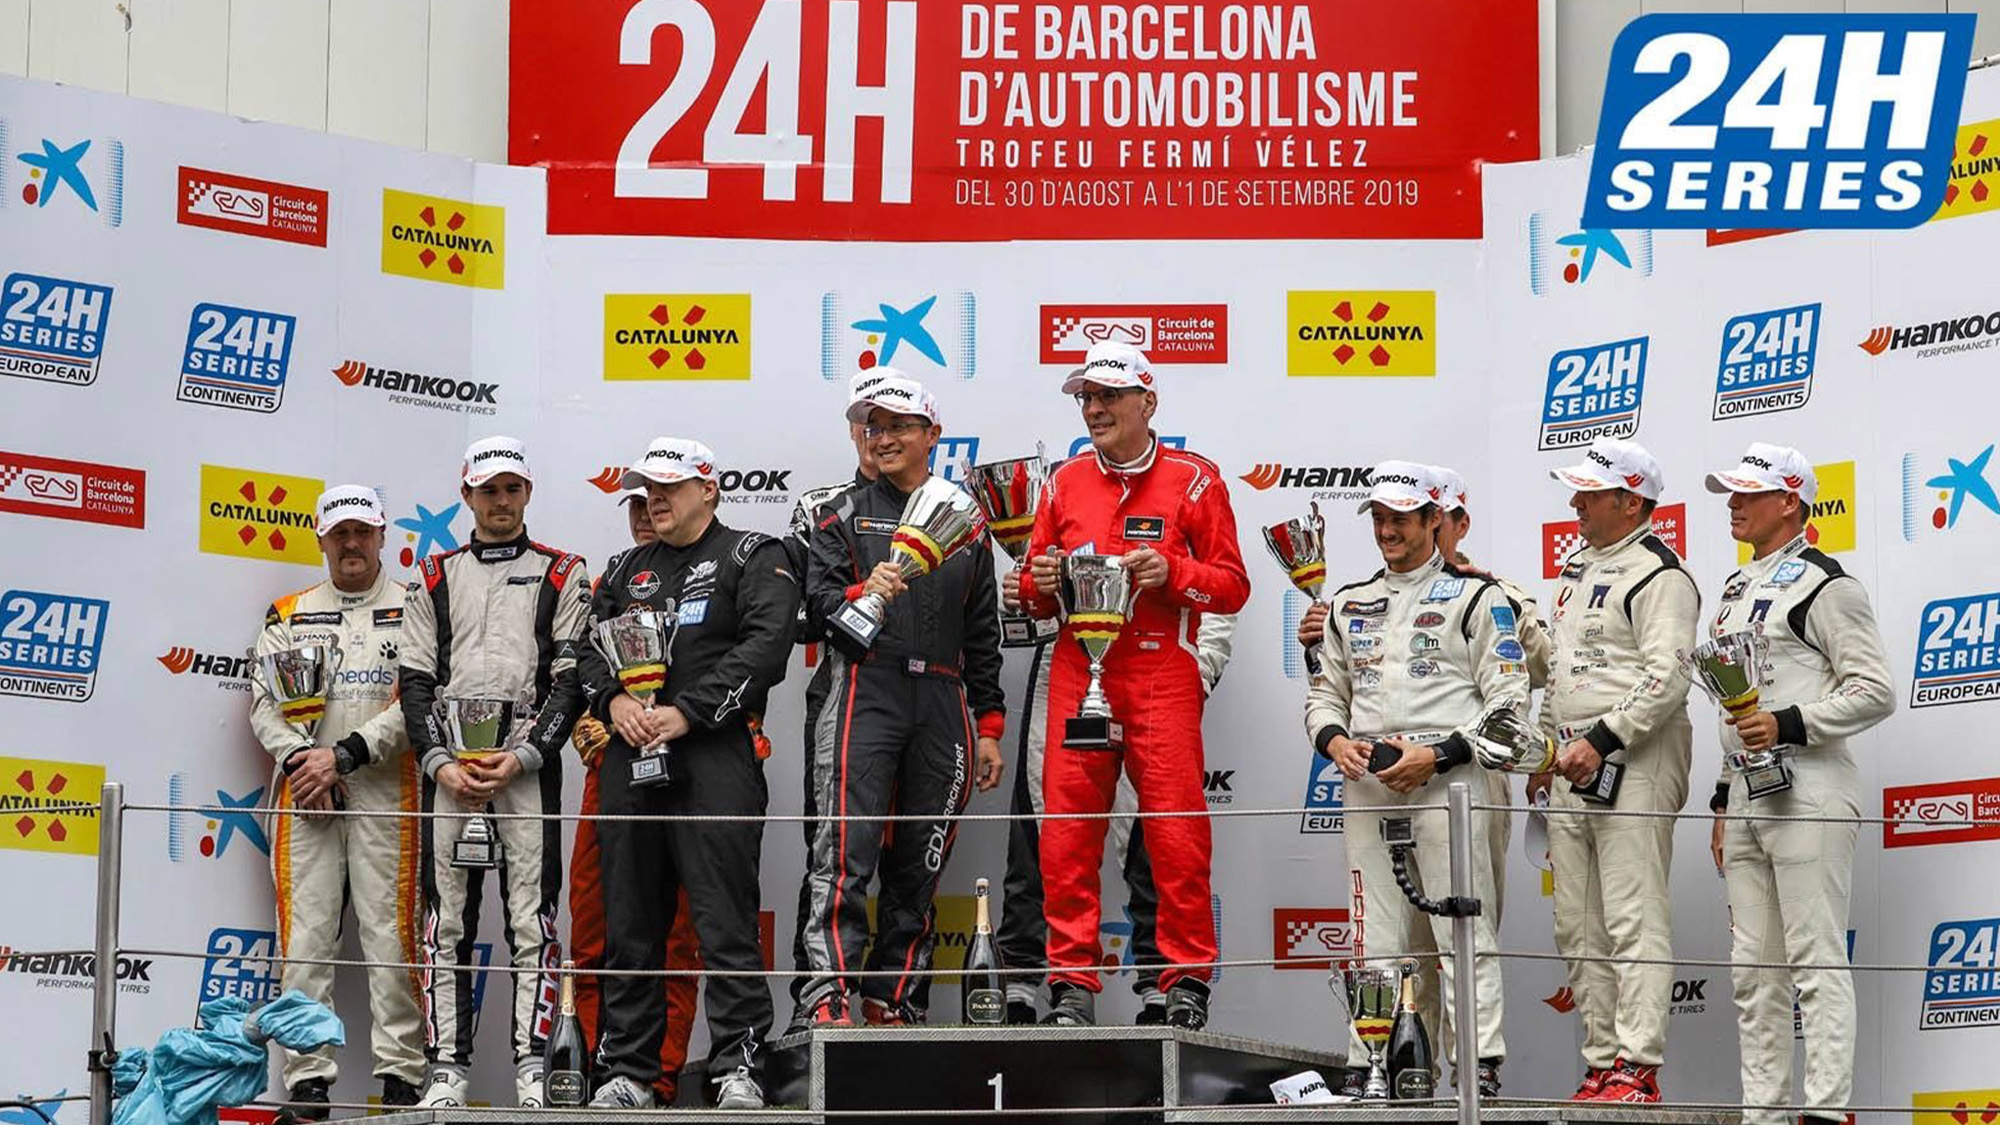 Dominique Bastien holds his trophy on the podium for winning his class in the 2019 24 Hours of Barcelona